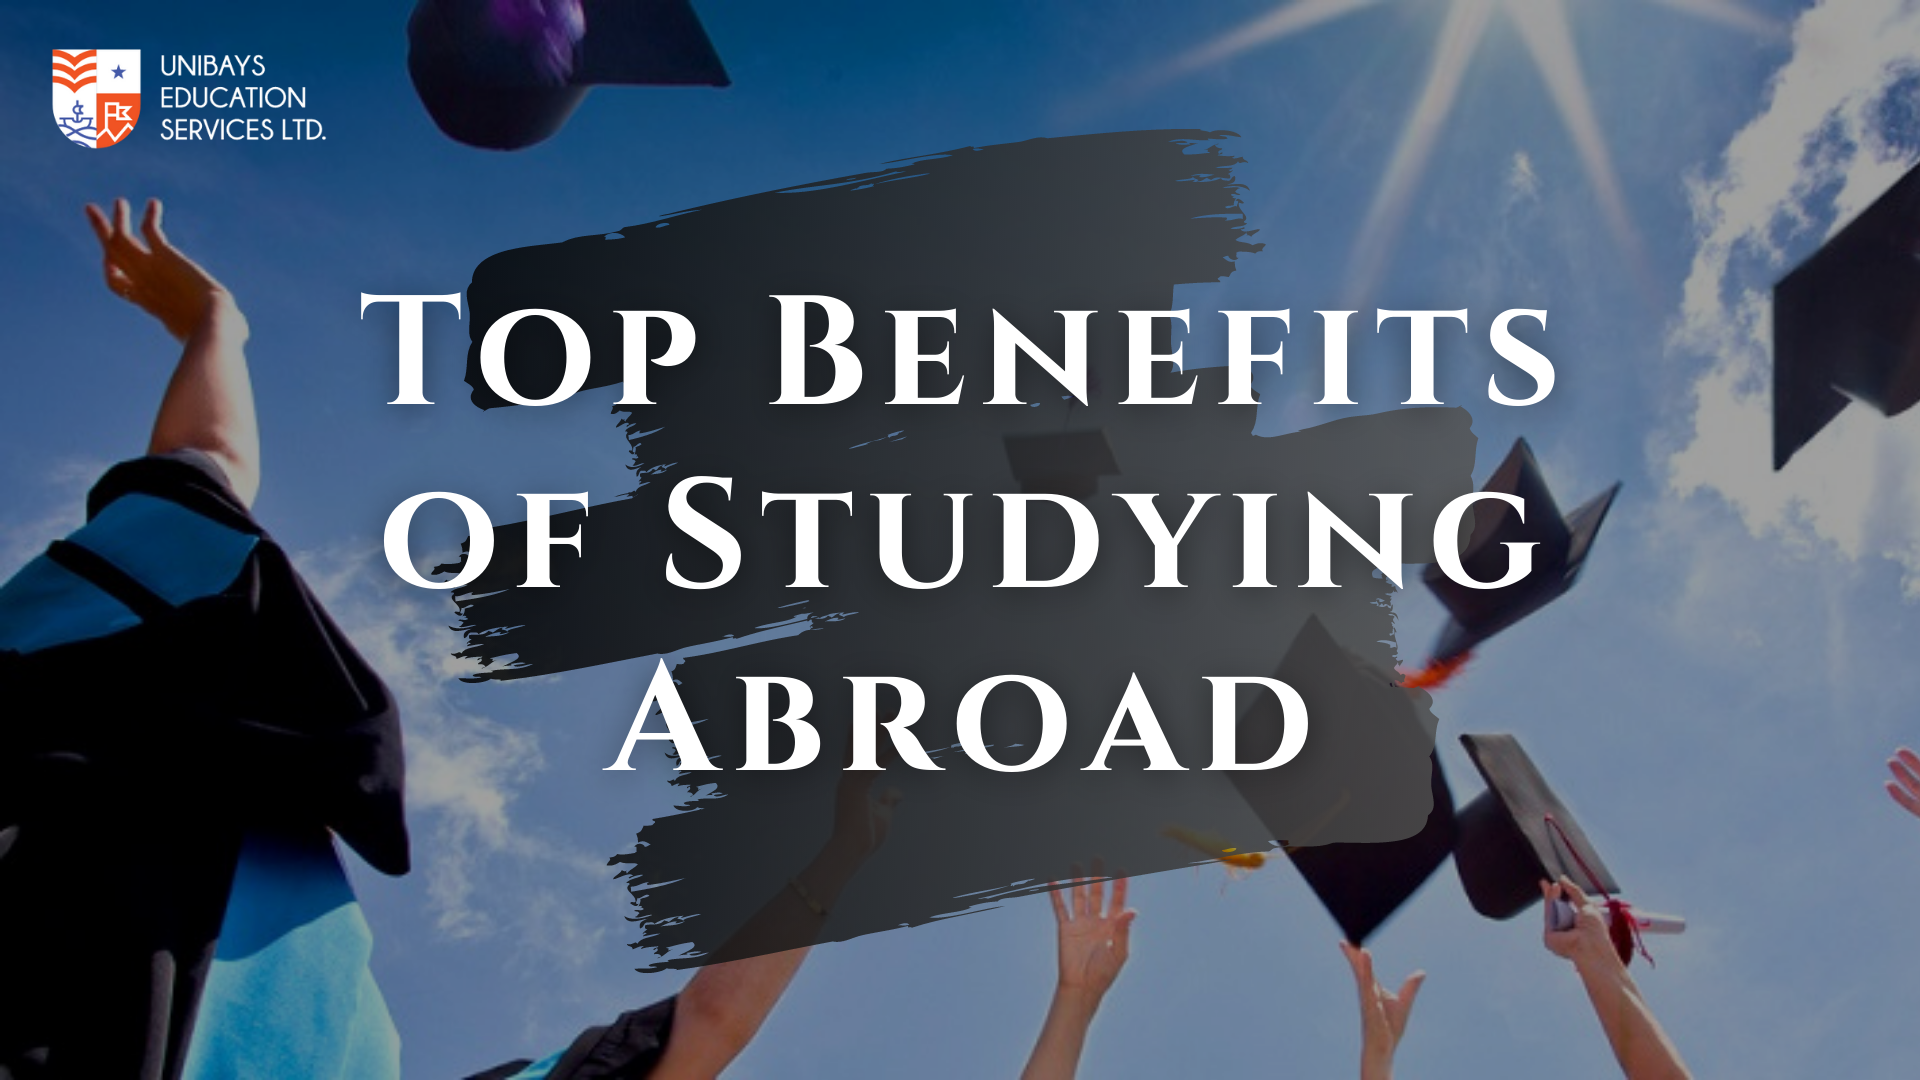 Top Benefits of Studying Abroad